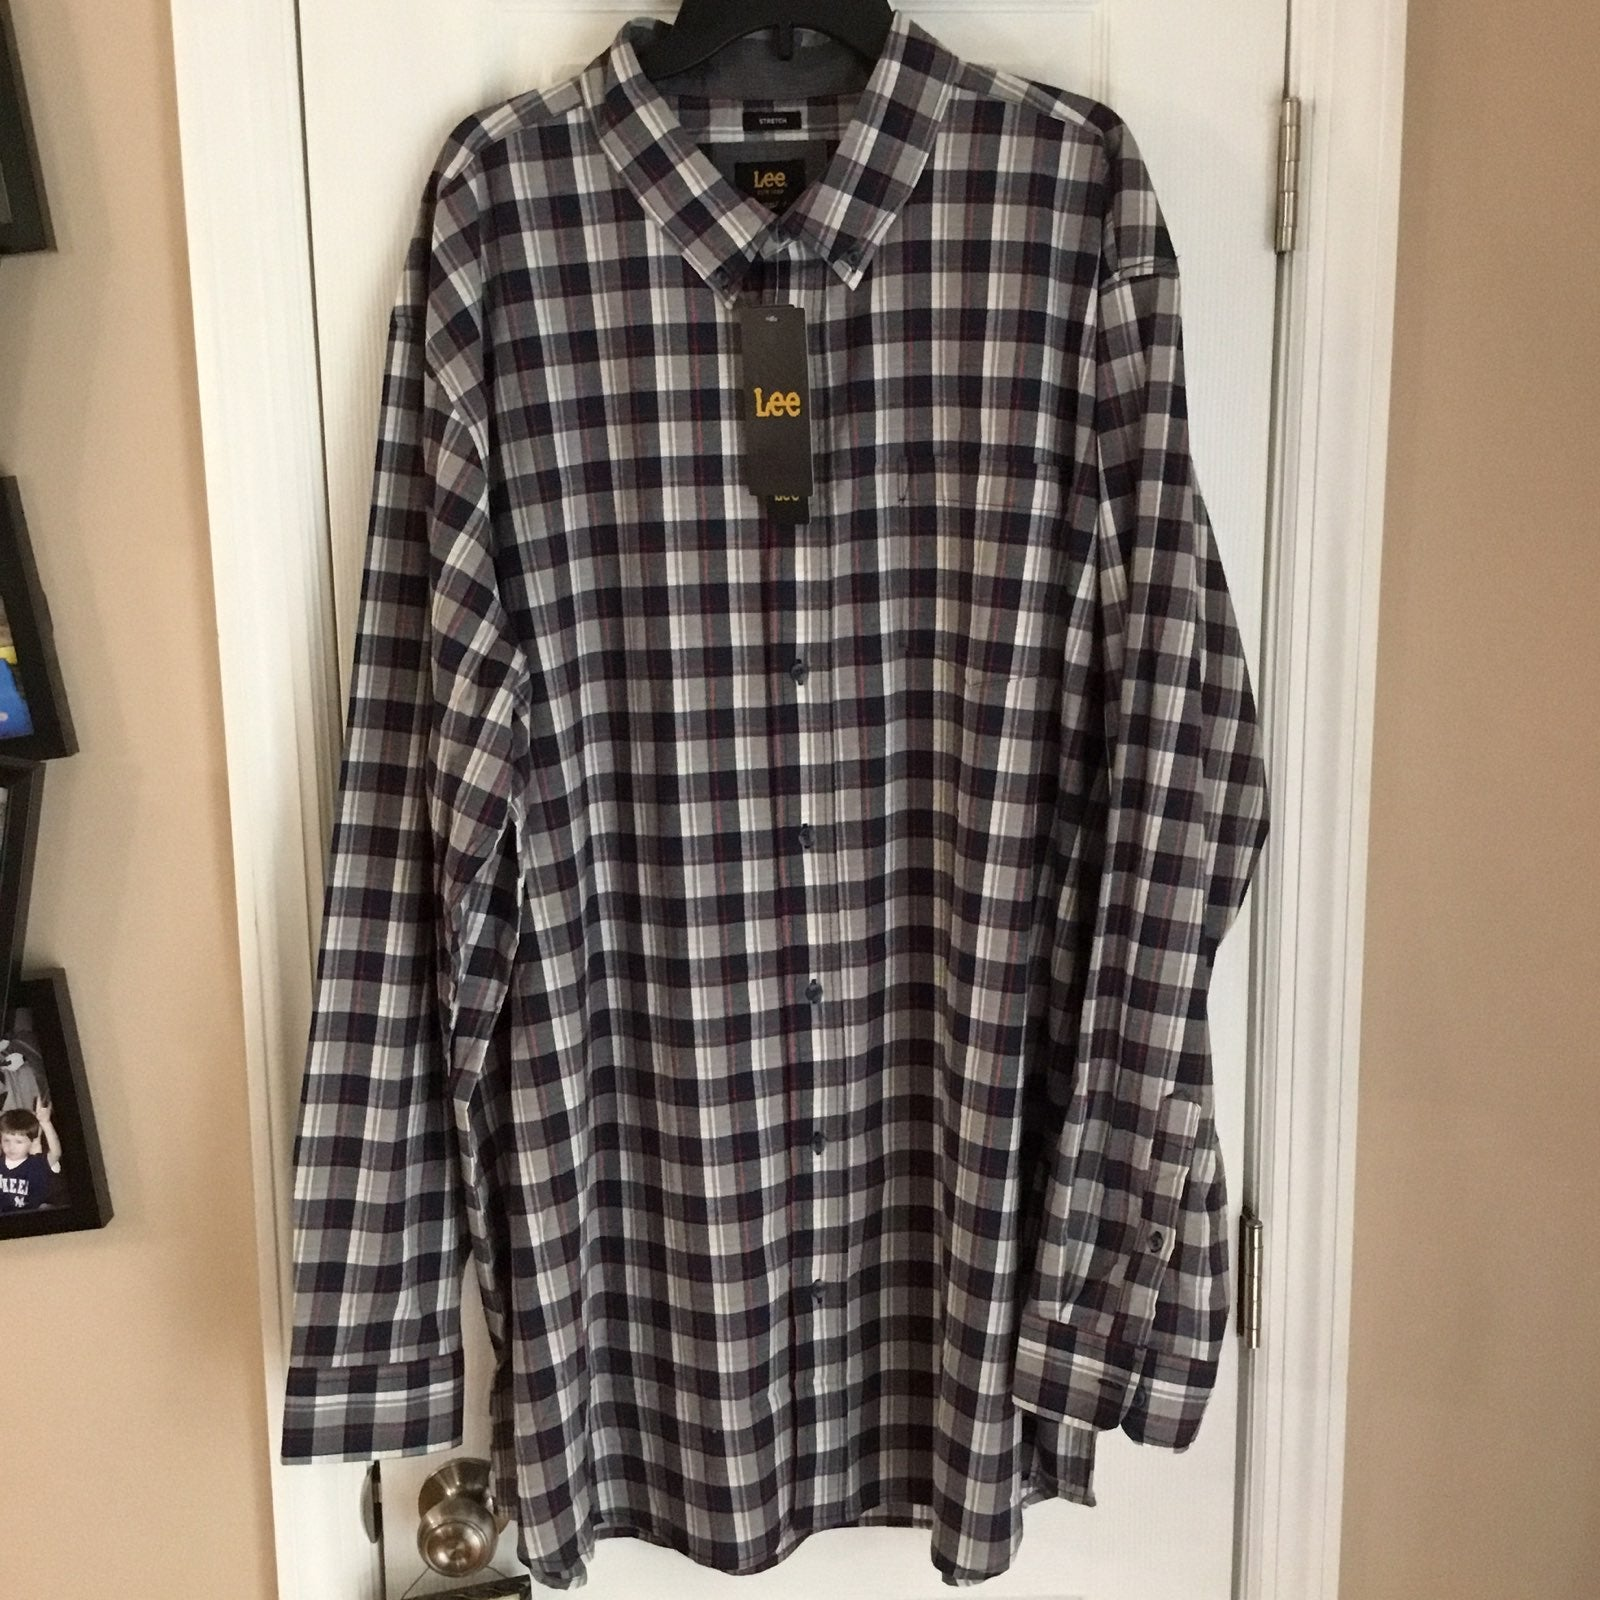 NEW LEE PLUS SIZE BUTTON UP SHIRT 55%OFF